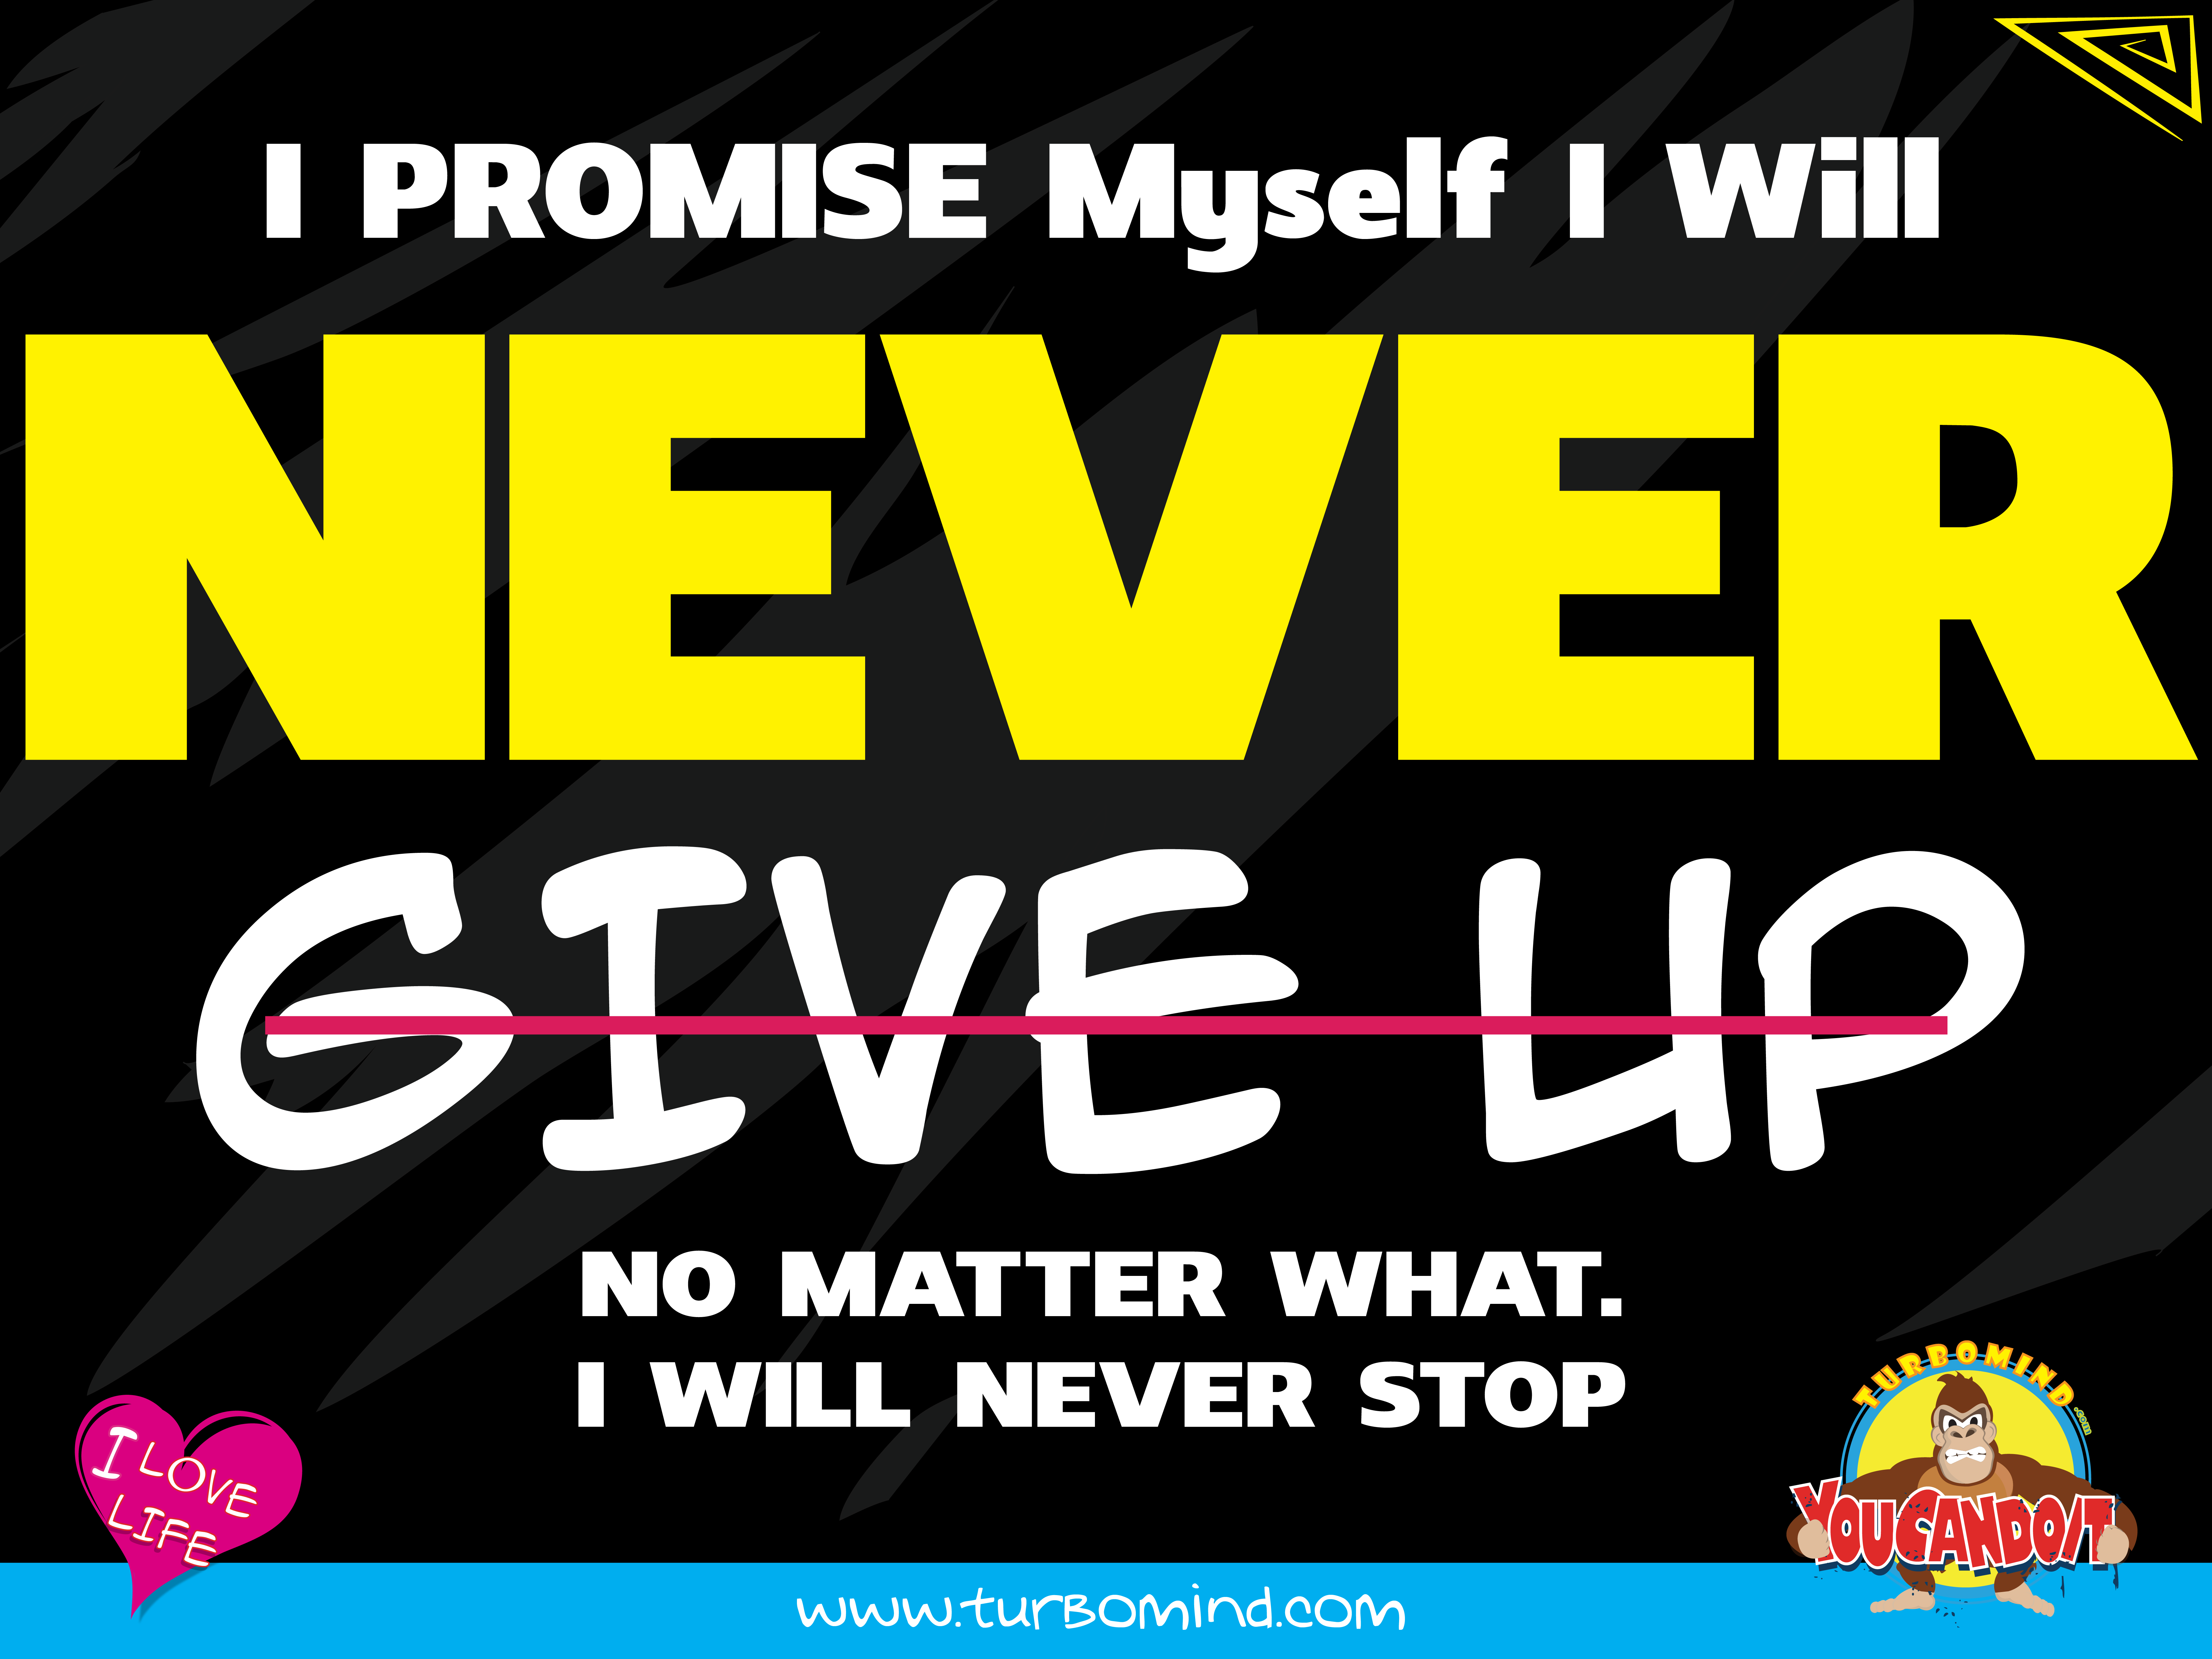 i will NEVER GIVE UP, TURBOMIND ACCESSORY LINE, TURBOMIND.COM